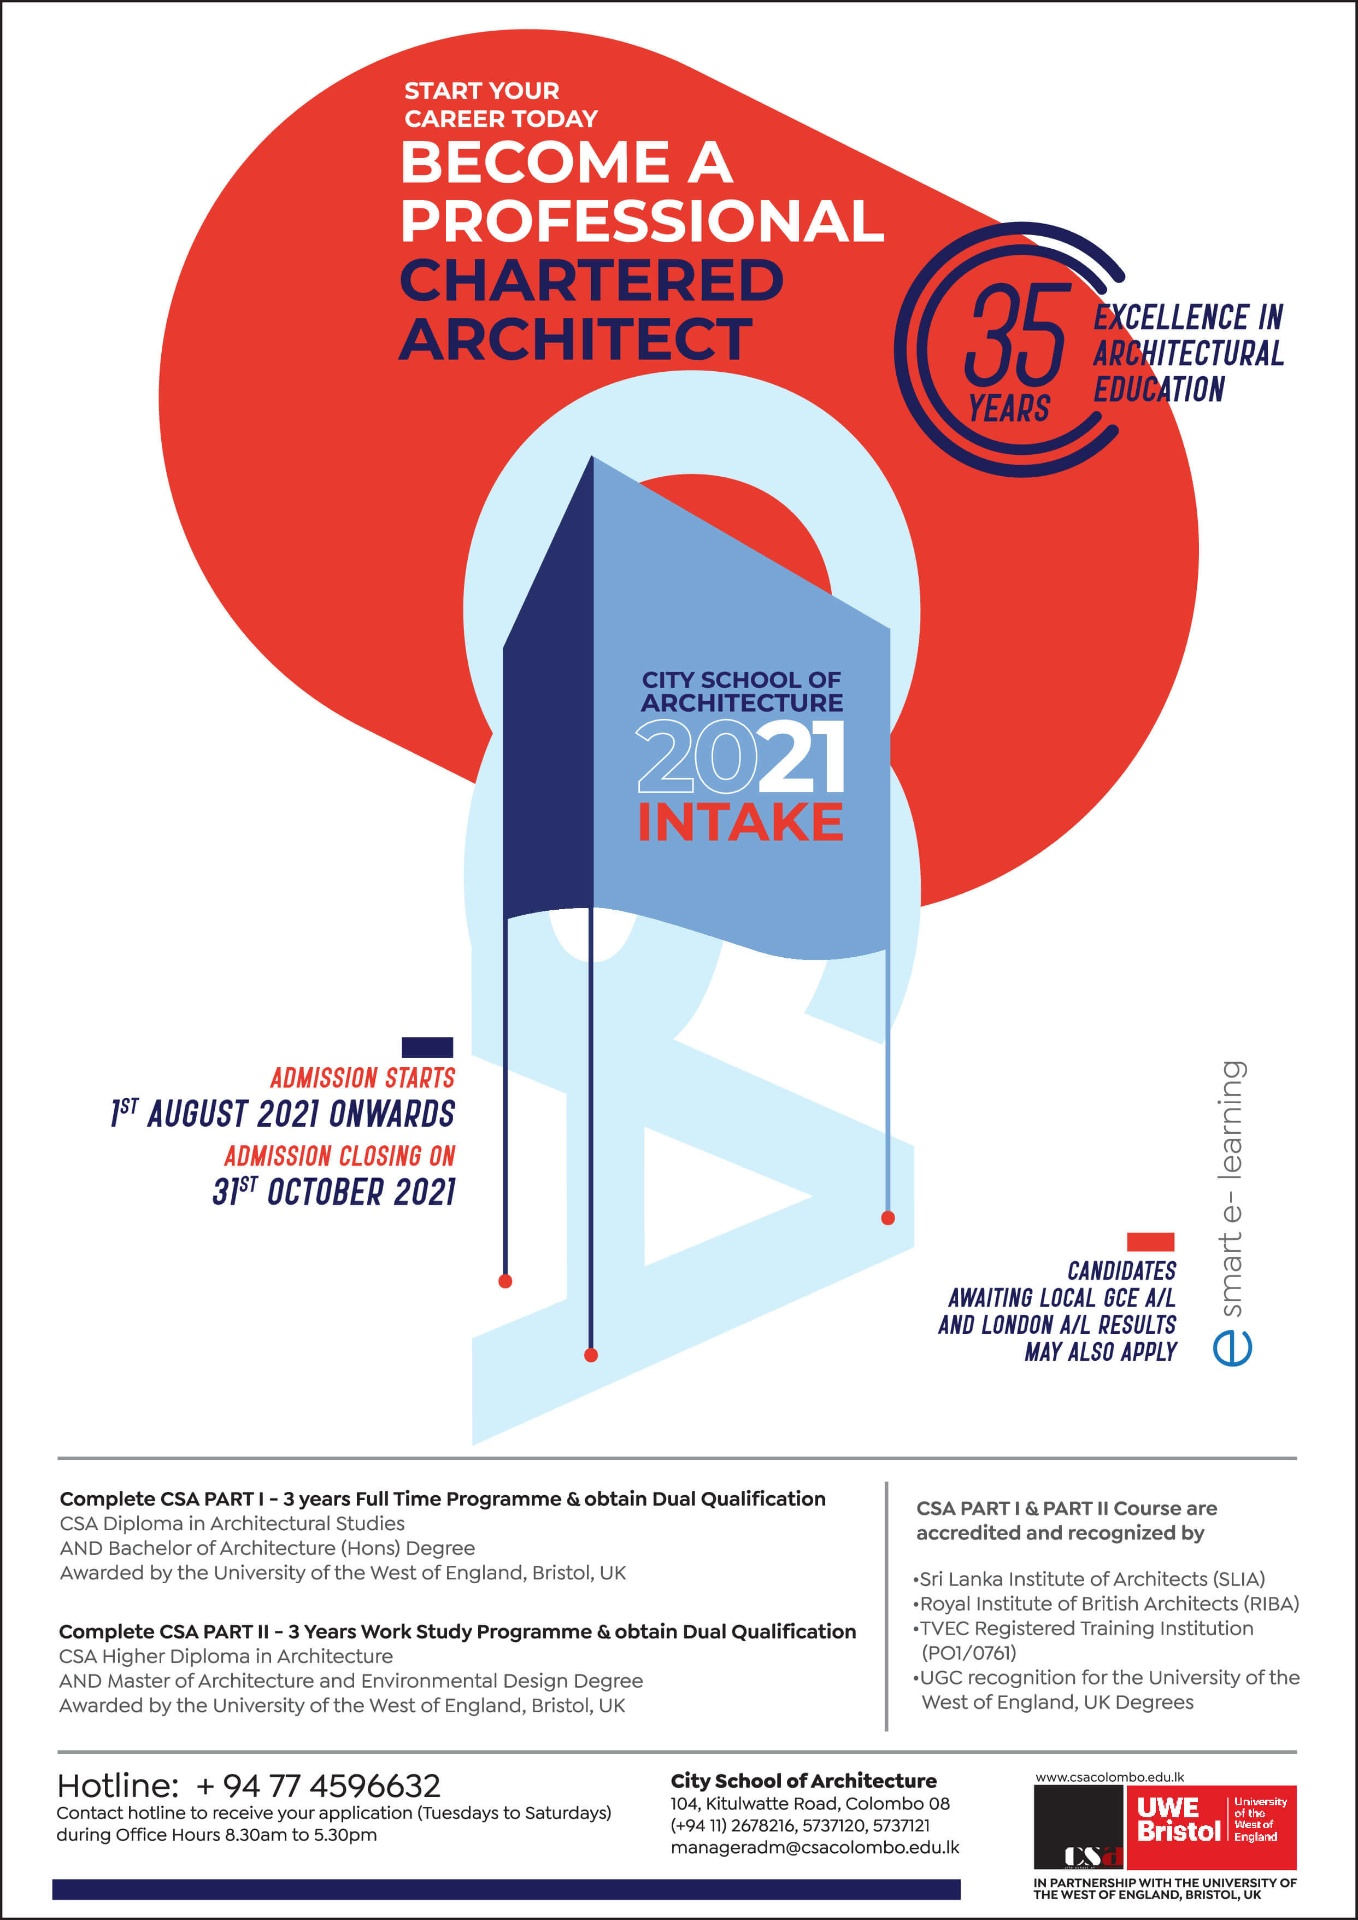 Become a Professional Chartered Architect - City School of Architecture 2021 Intake